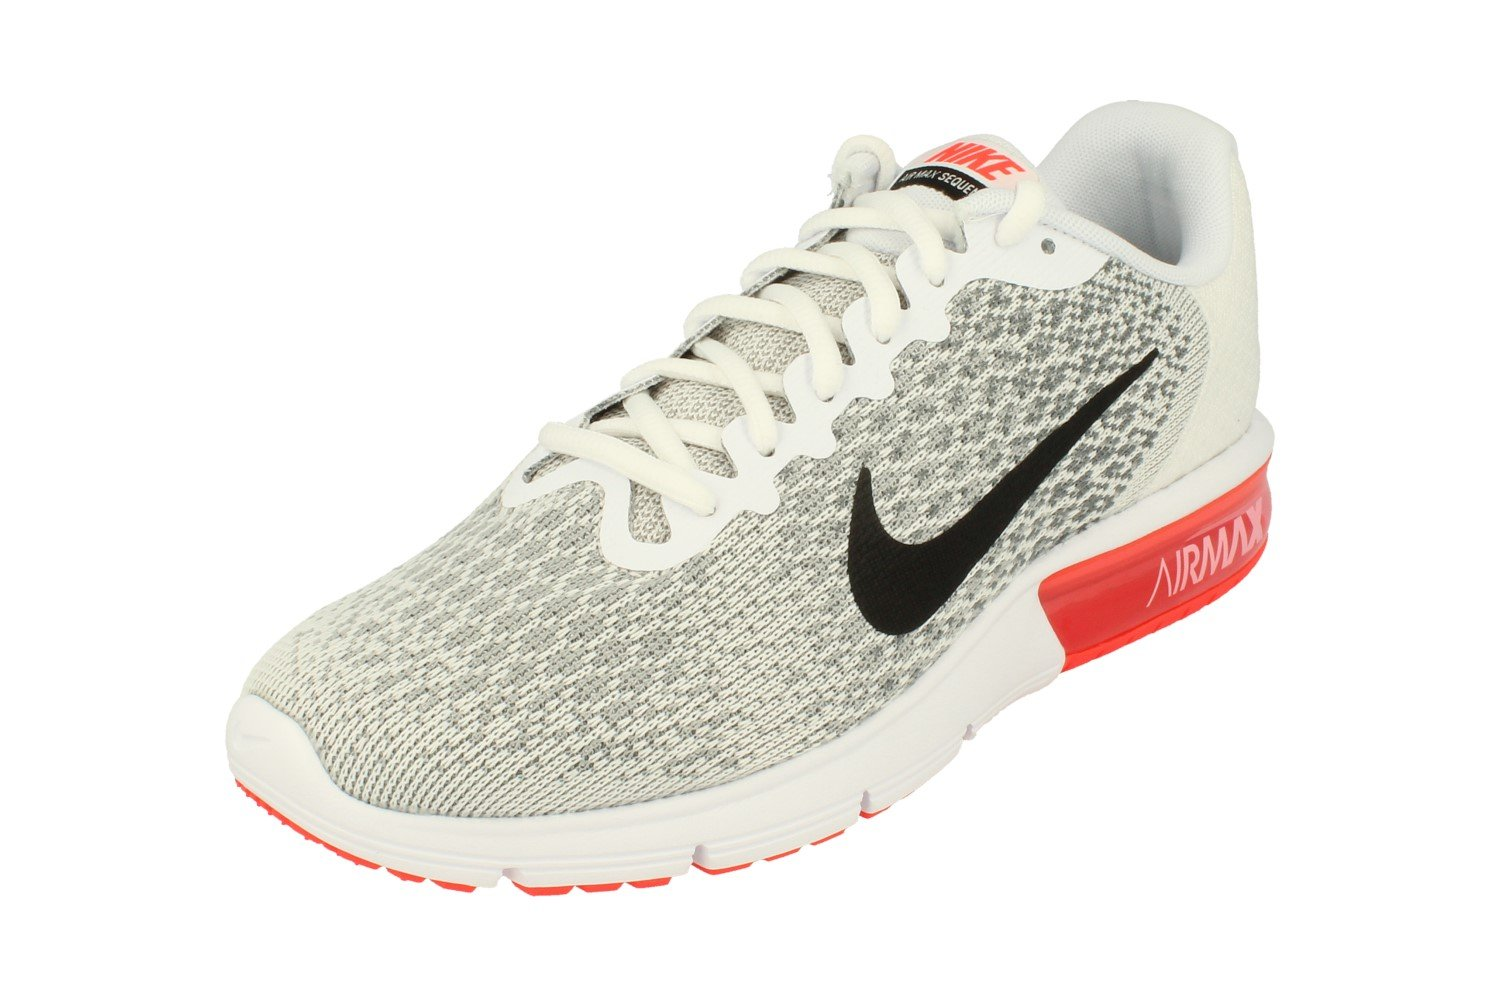 Die neue Kollektion an 852461 012 Nike Air Max Sequent 2